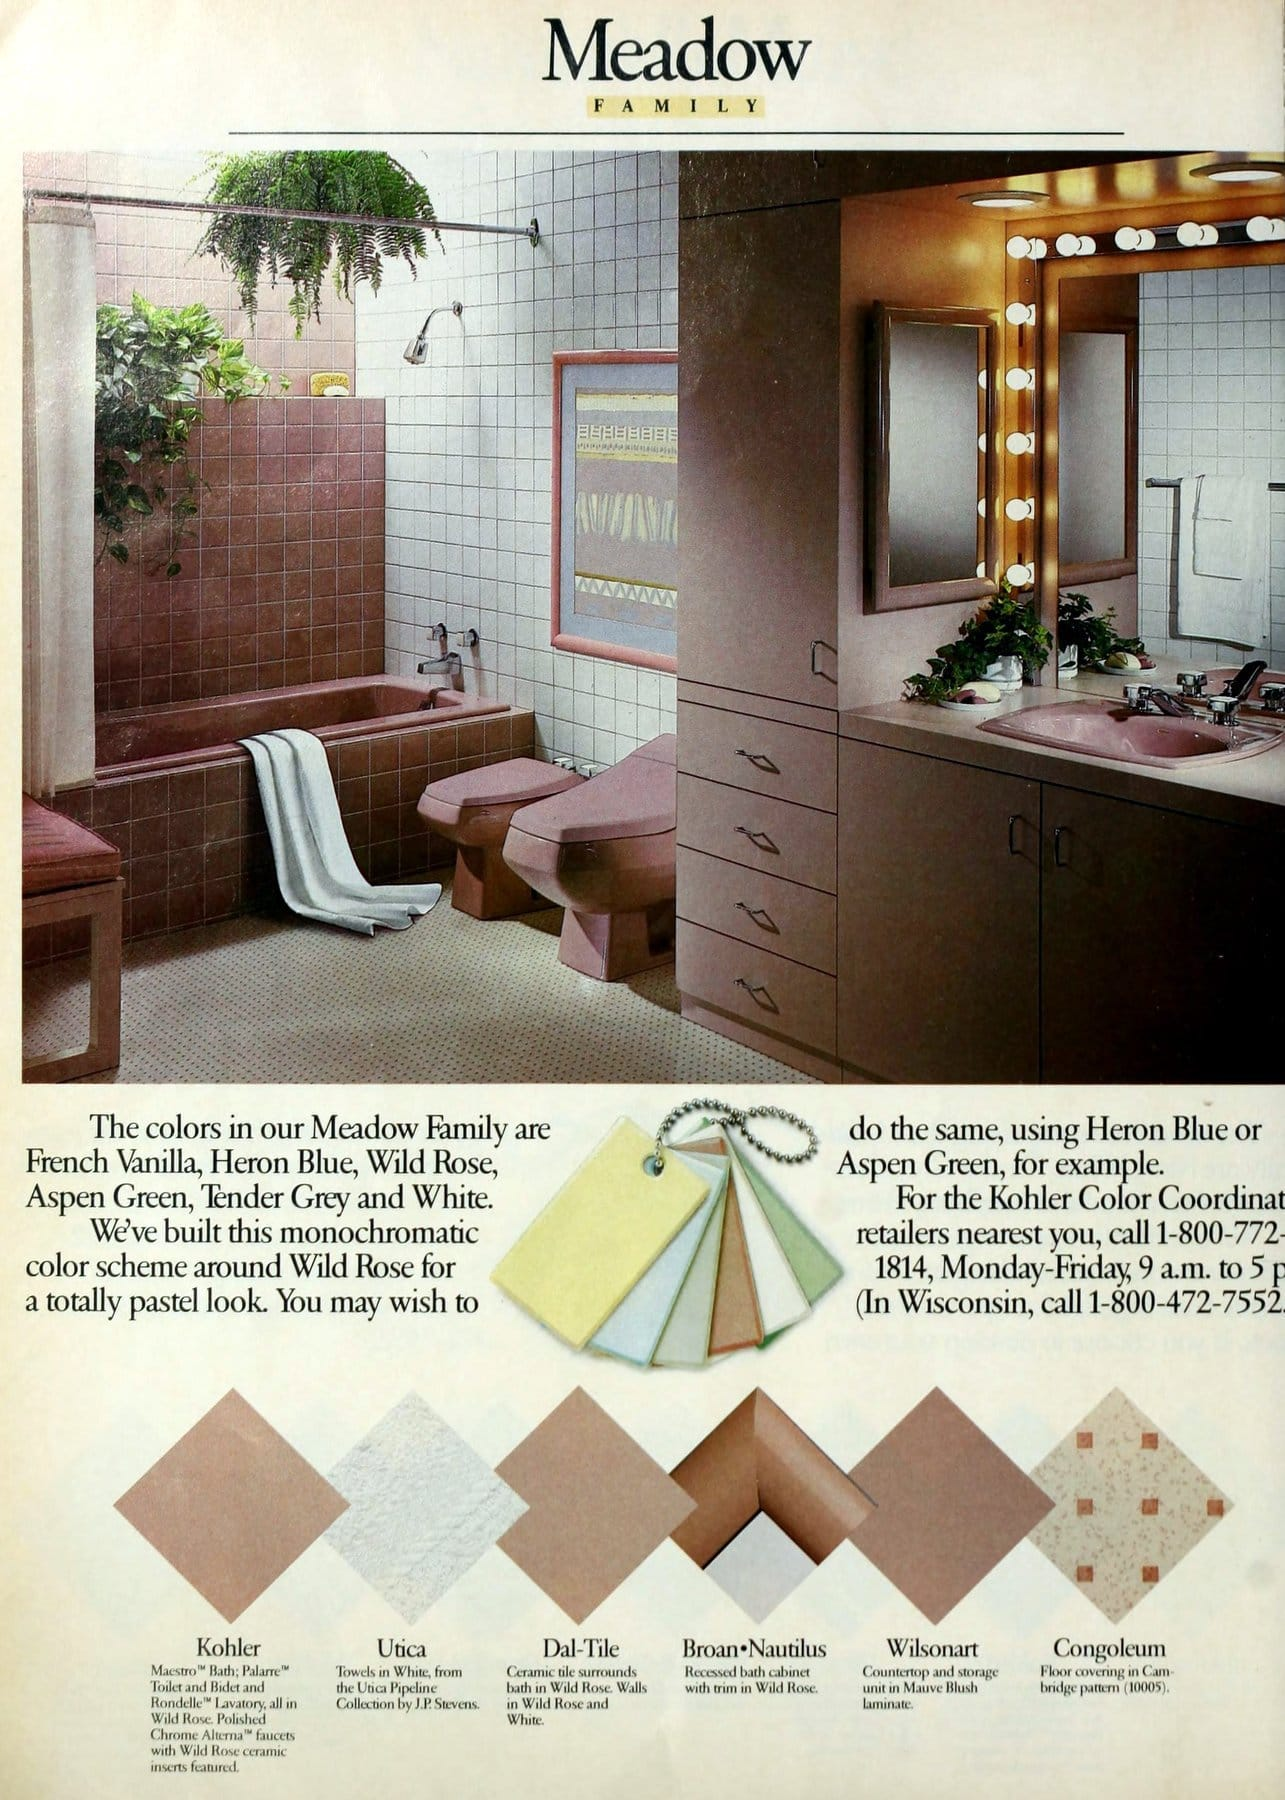 Wild rose Meadow retro 1980s bathroom decor color scheme